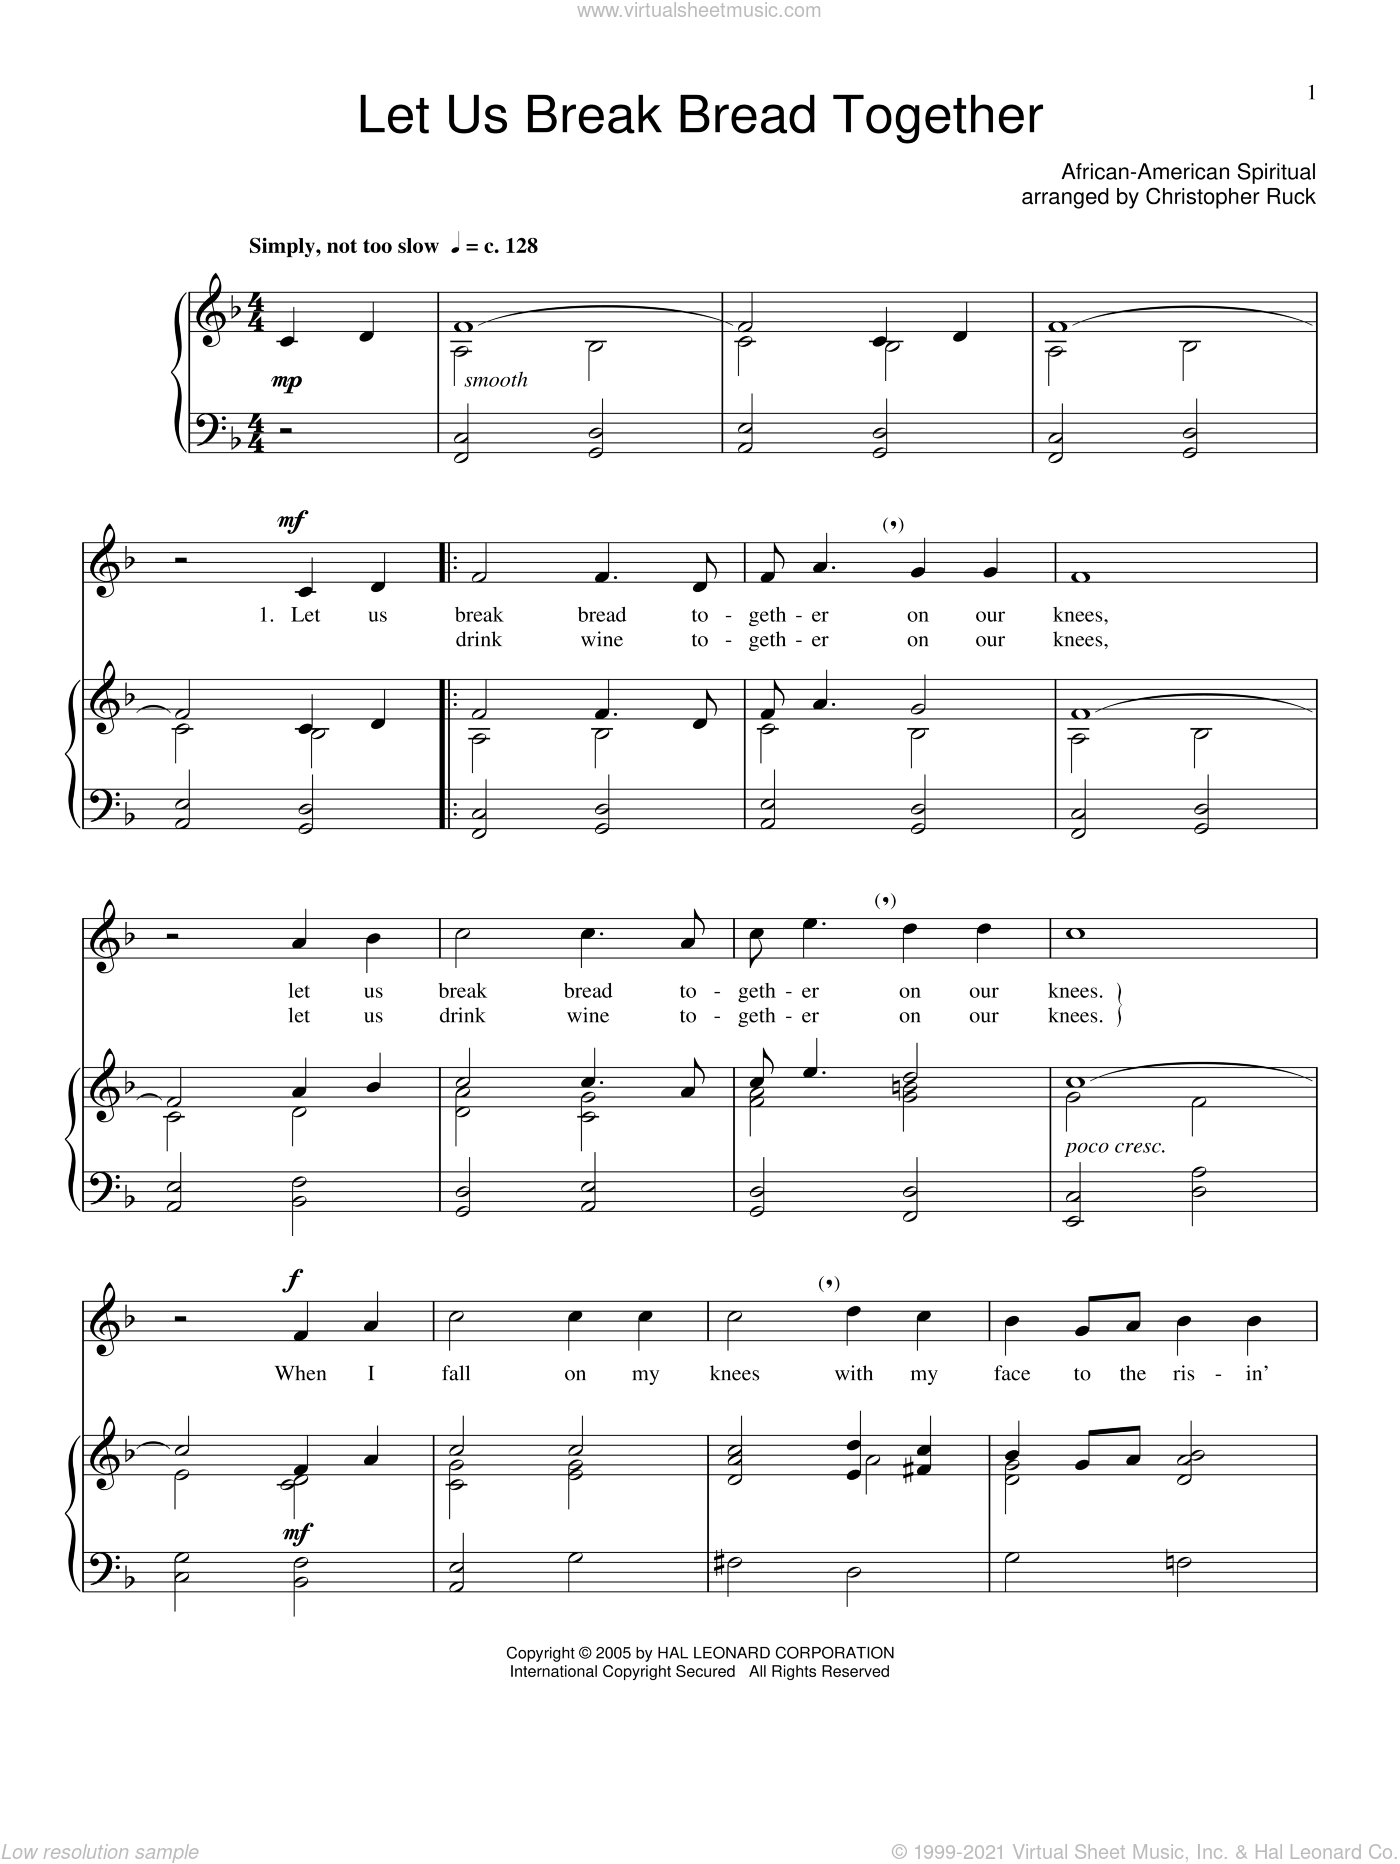 Let Us Break Bread Together sheet music for voice and piano